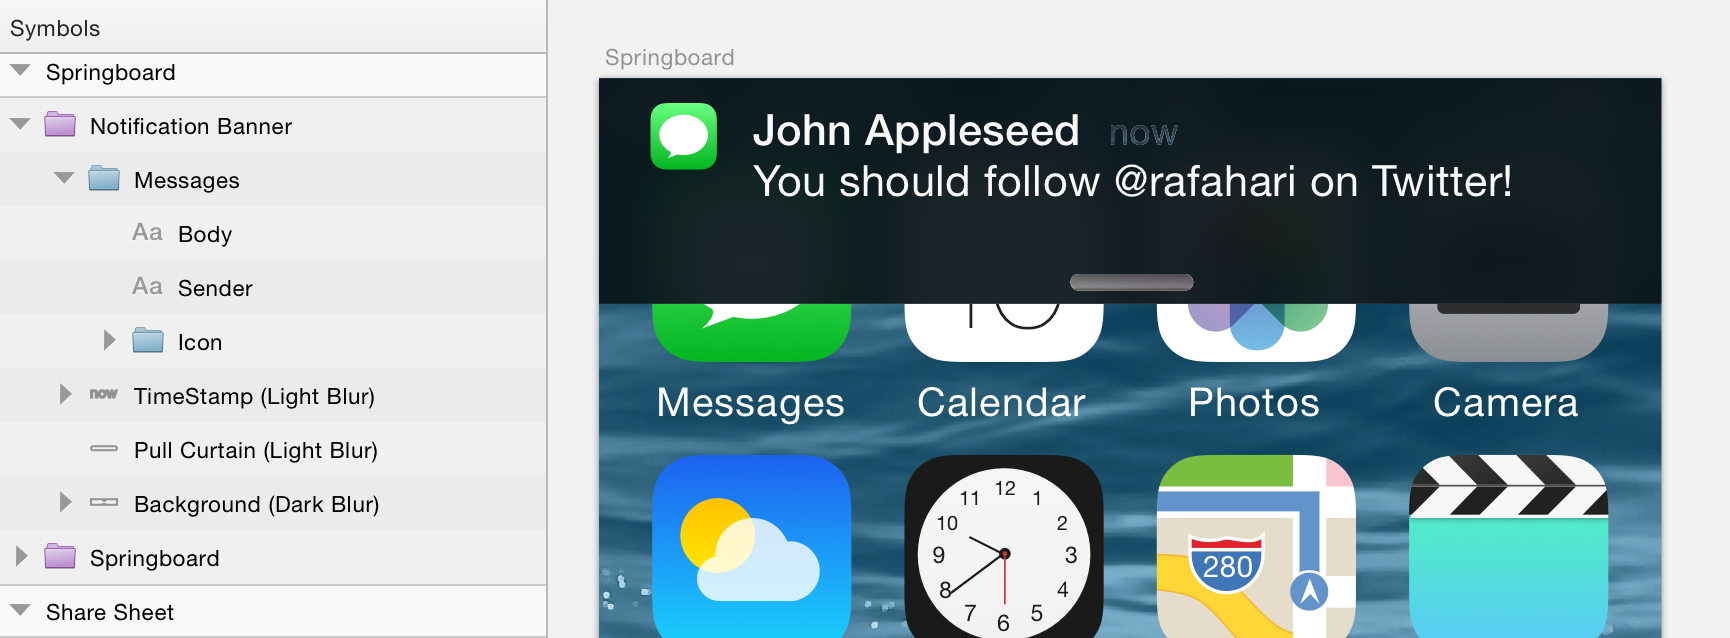 GitHub - rafaelconde/ios8-ui-kit: And extended and updated to iOS 8